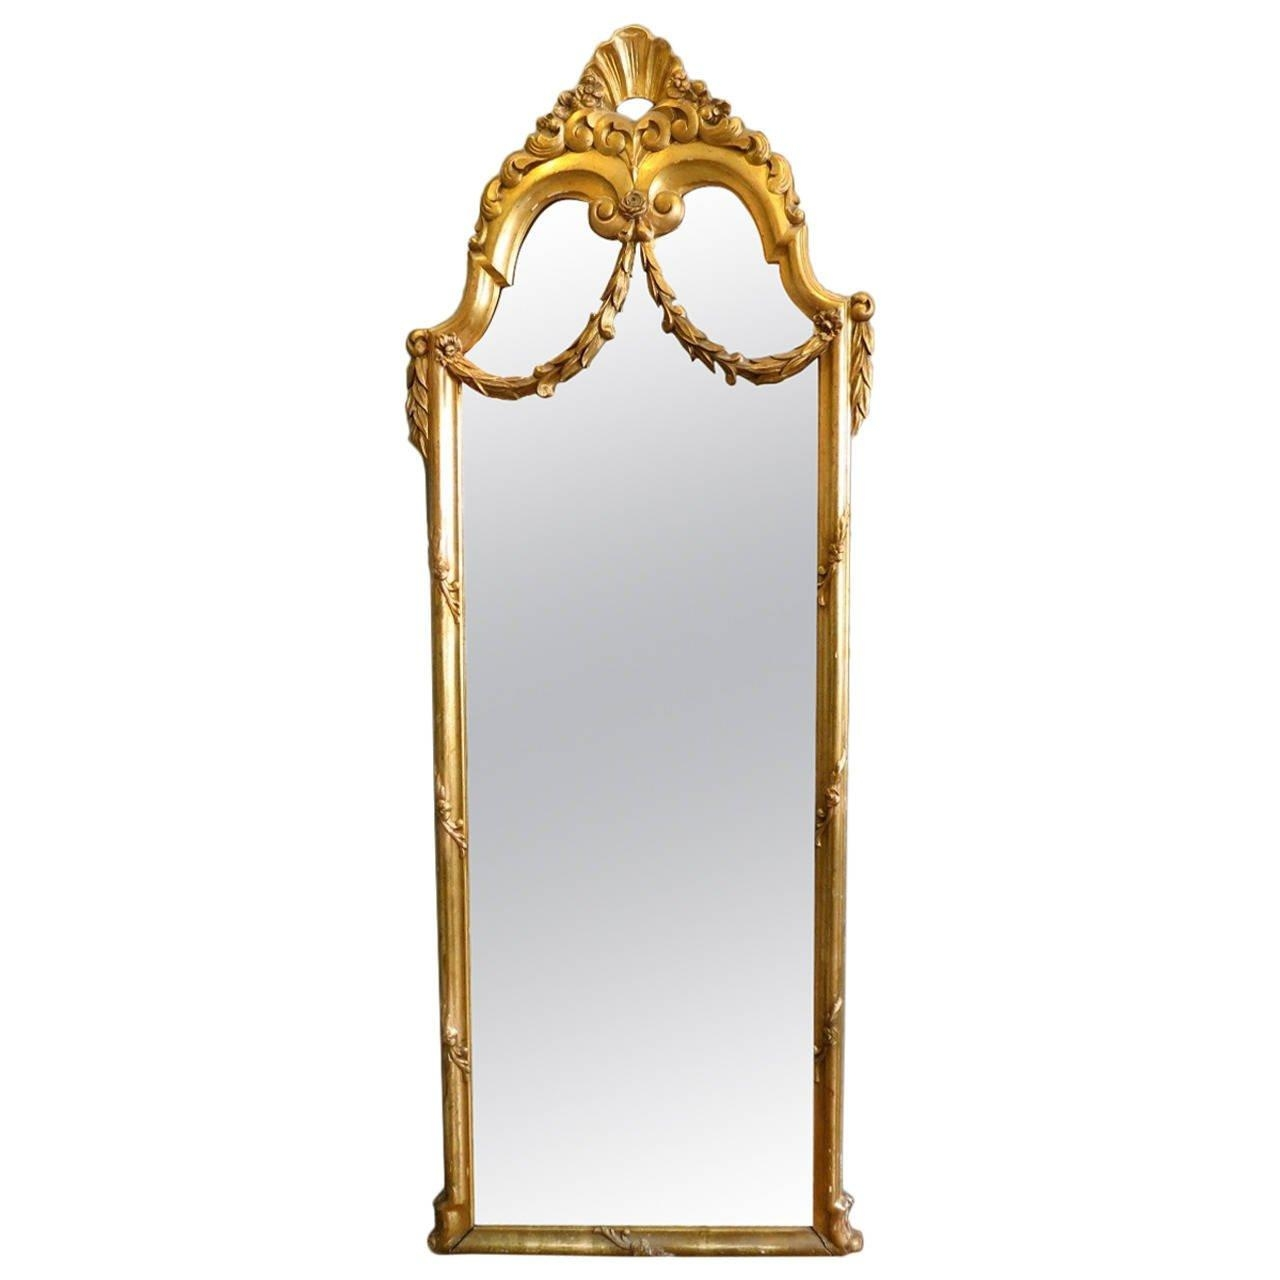 Antique French Gold Gilt Floor Standing Mirror At 1Stdibs Regarding Gold Arch Mirror (Photo 11 of 20)